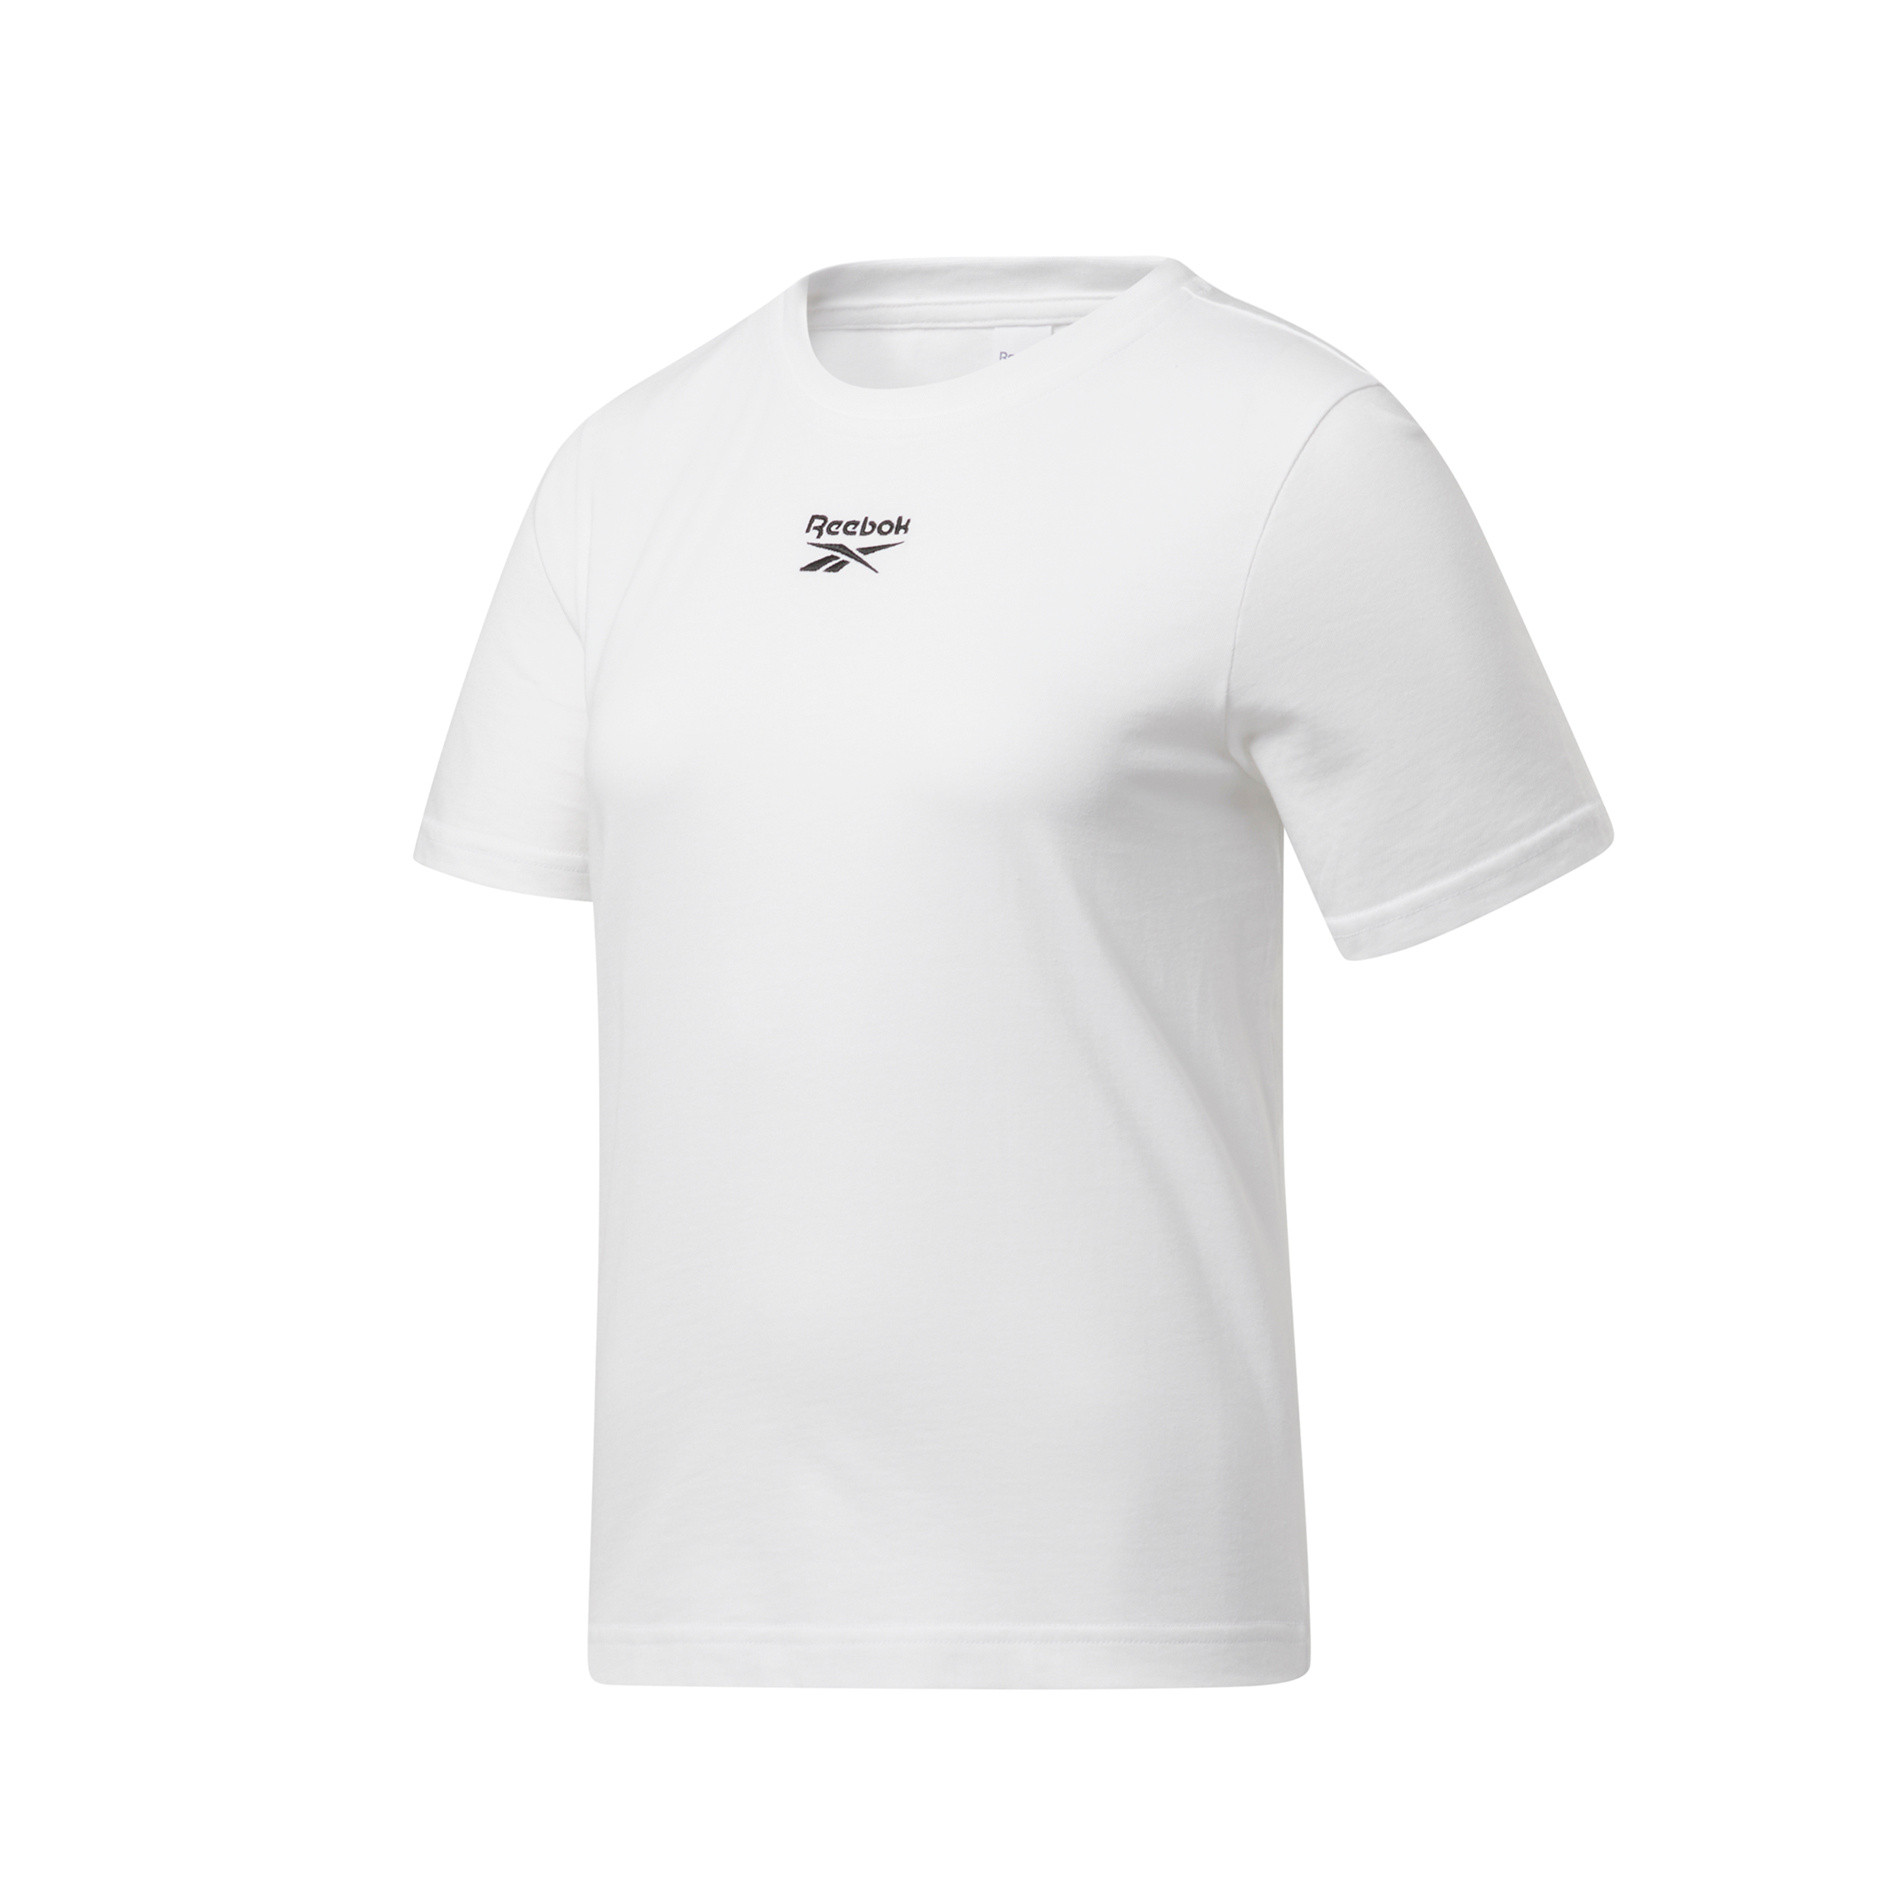 T-shirt classica con logo, Bianco, large image number 0